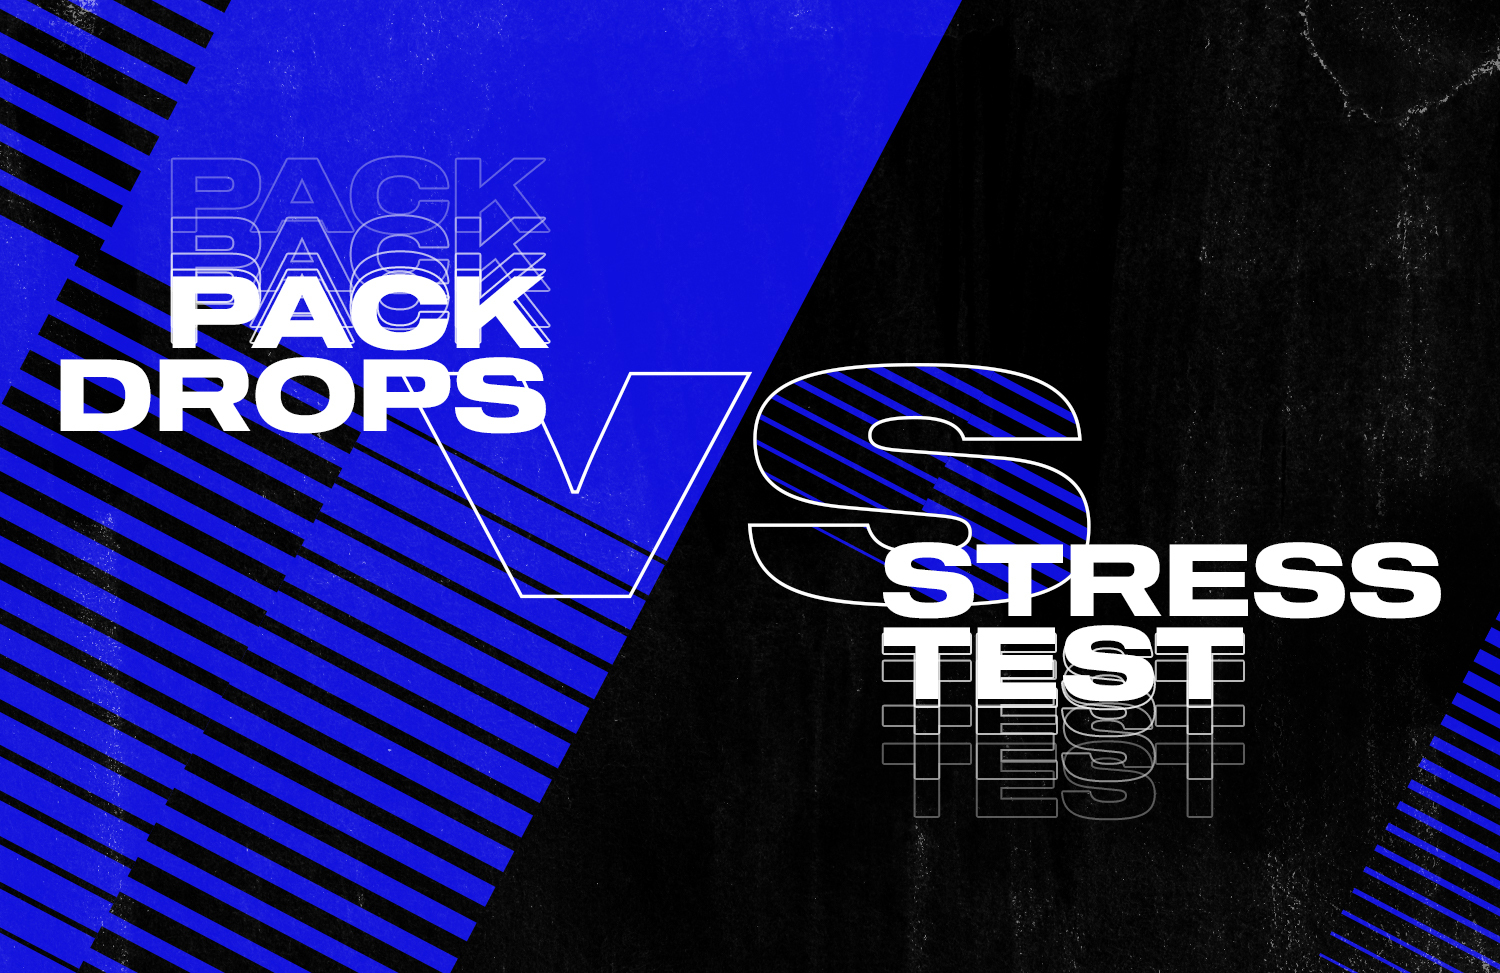 We have received a lot of inquiries around Stress Tests and pack drops. This post is a quick primer on the differences.